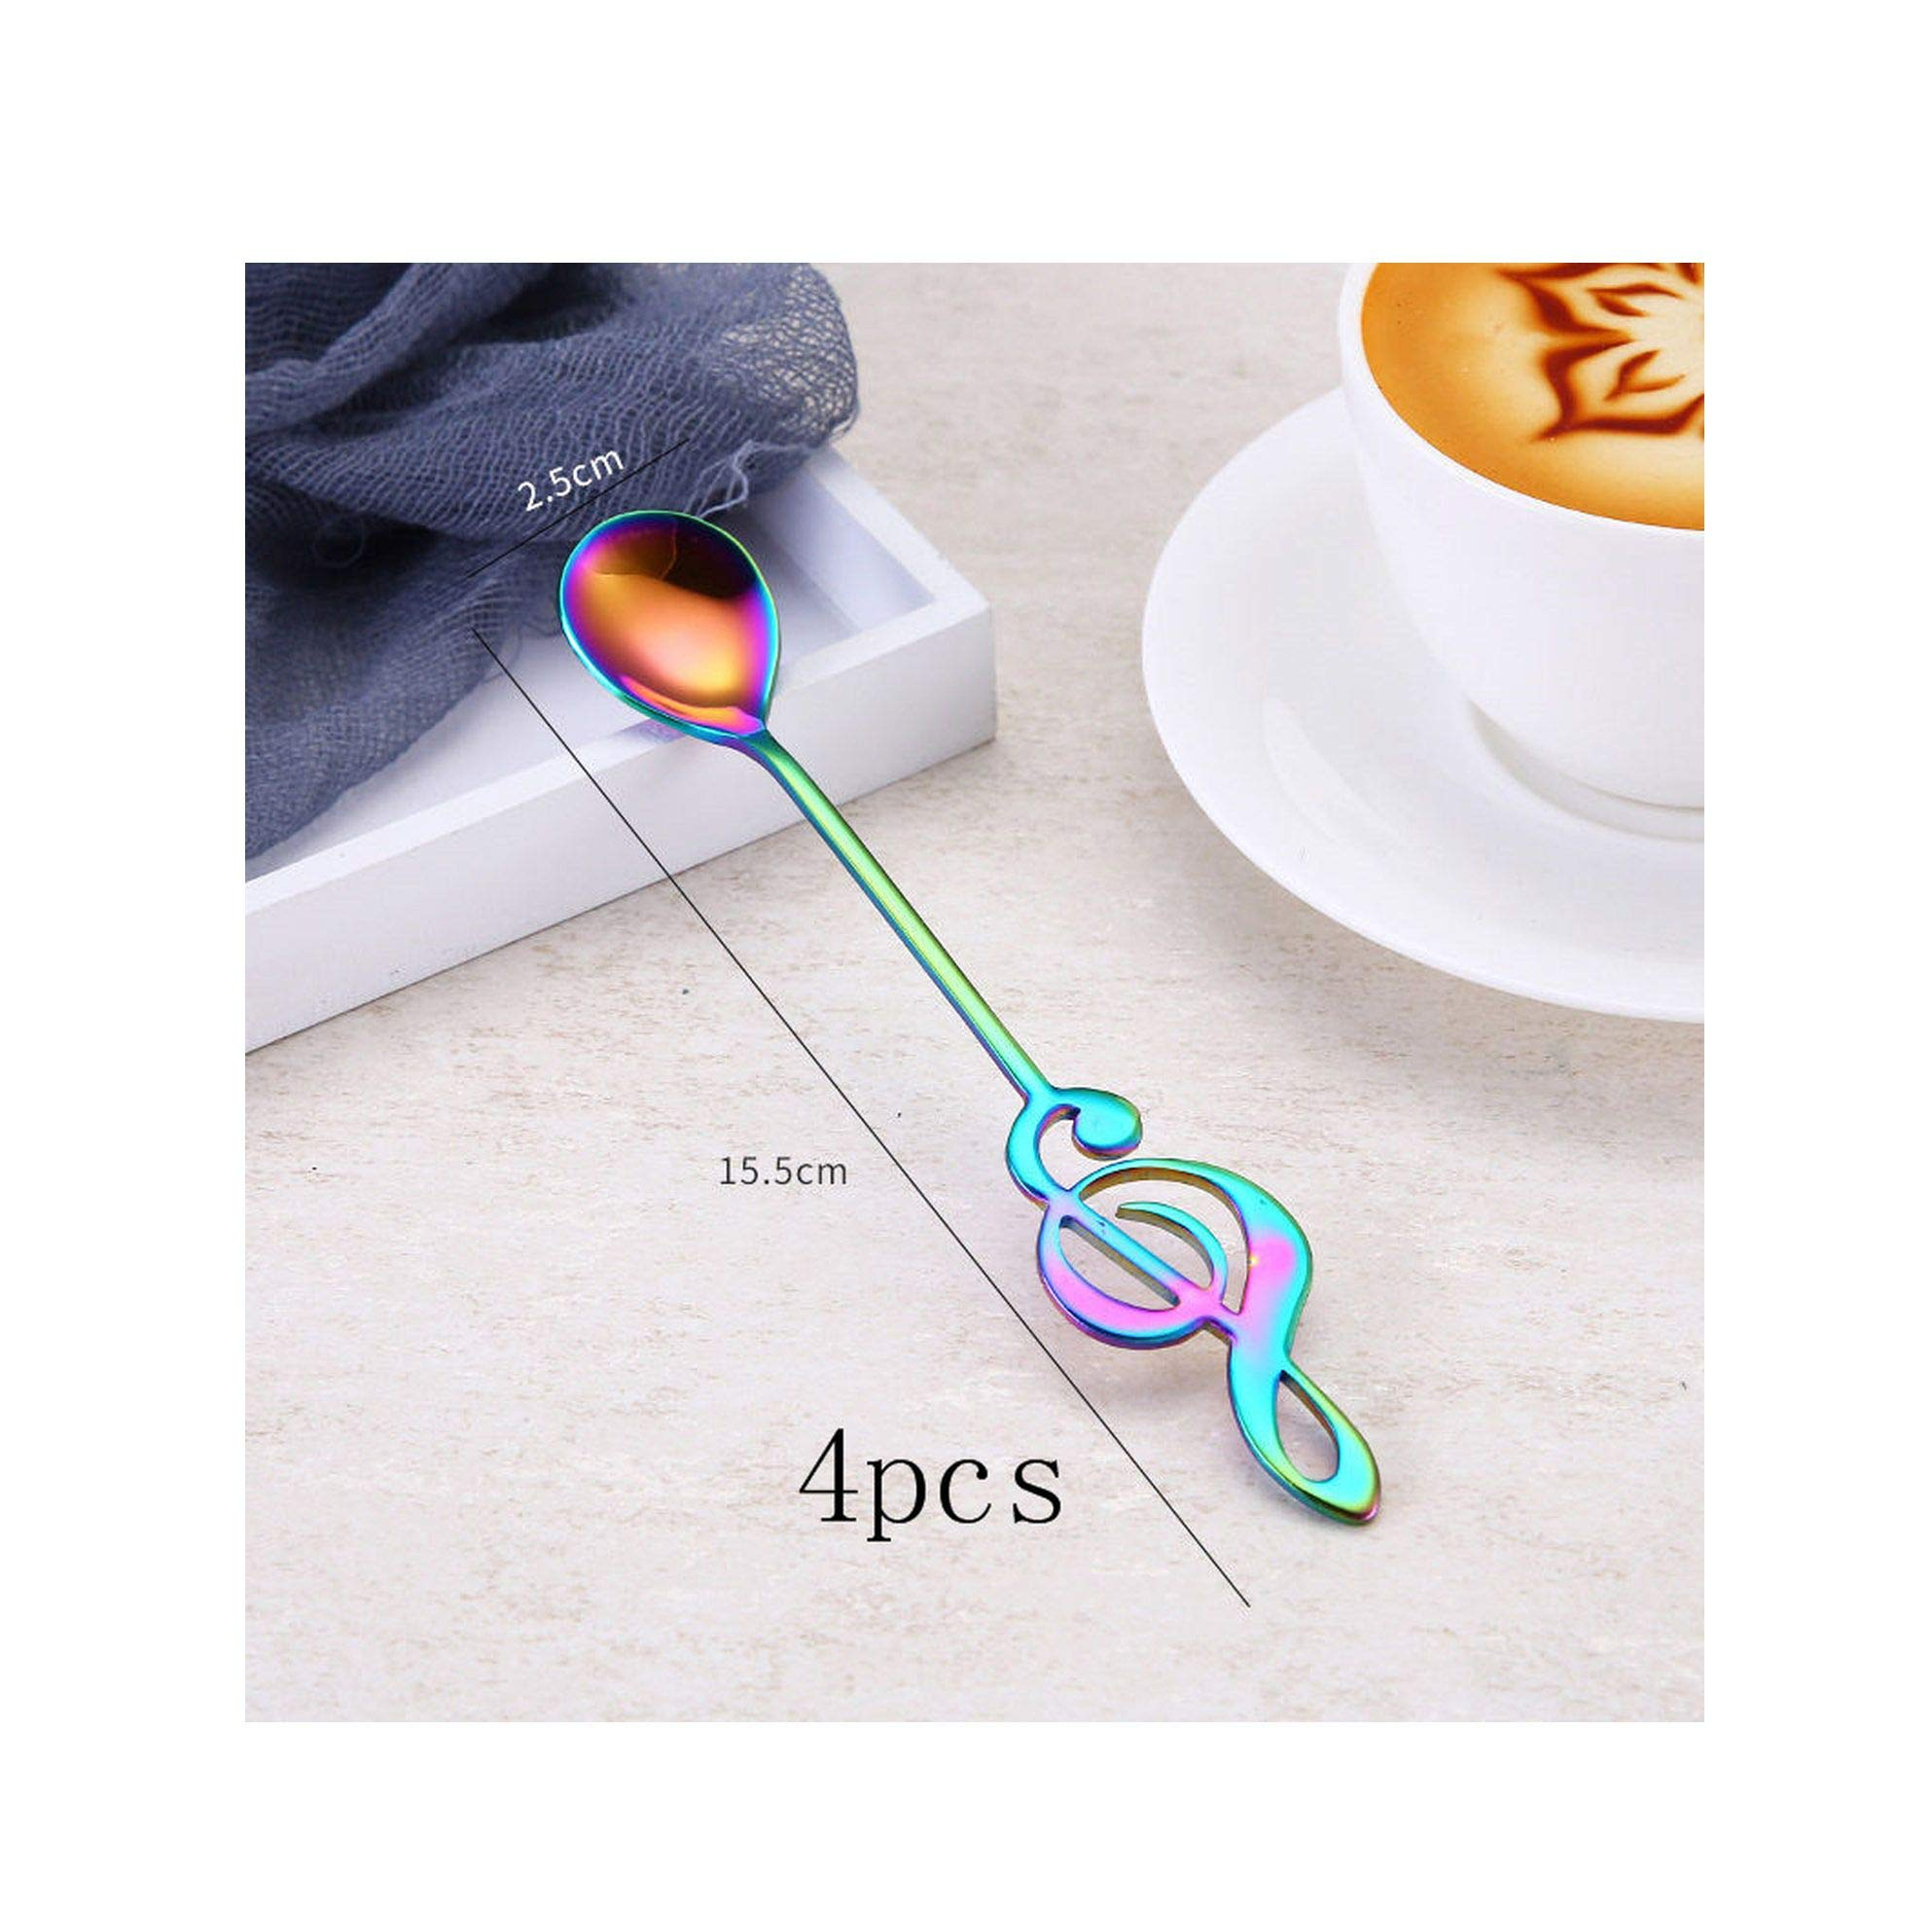 FAT BIG CAT 4Pcs/Set Musical Note Shaped Coffee Spoon Coffee Stirring Scoop Stainless Steel Milk Tea Drink Cafe Scoop,Colorful-4pcs